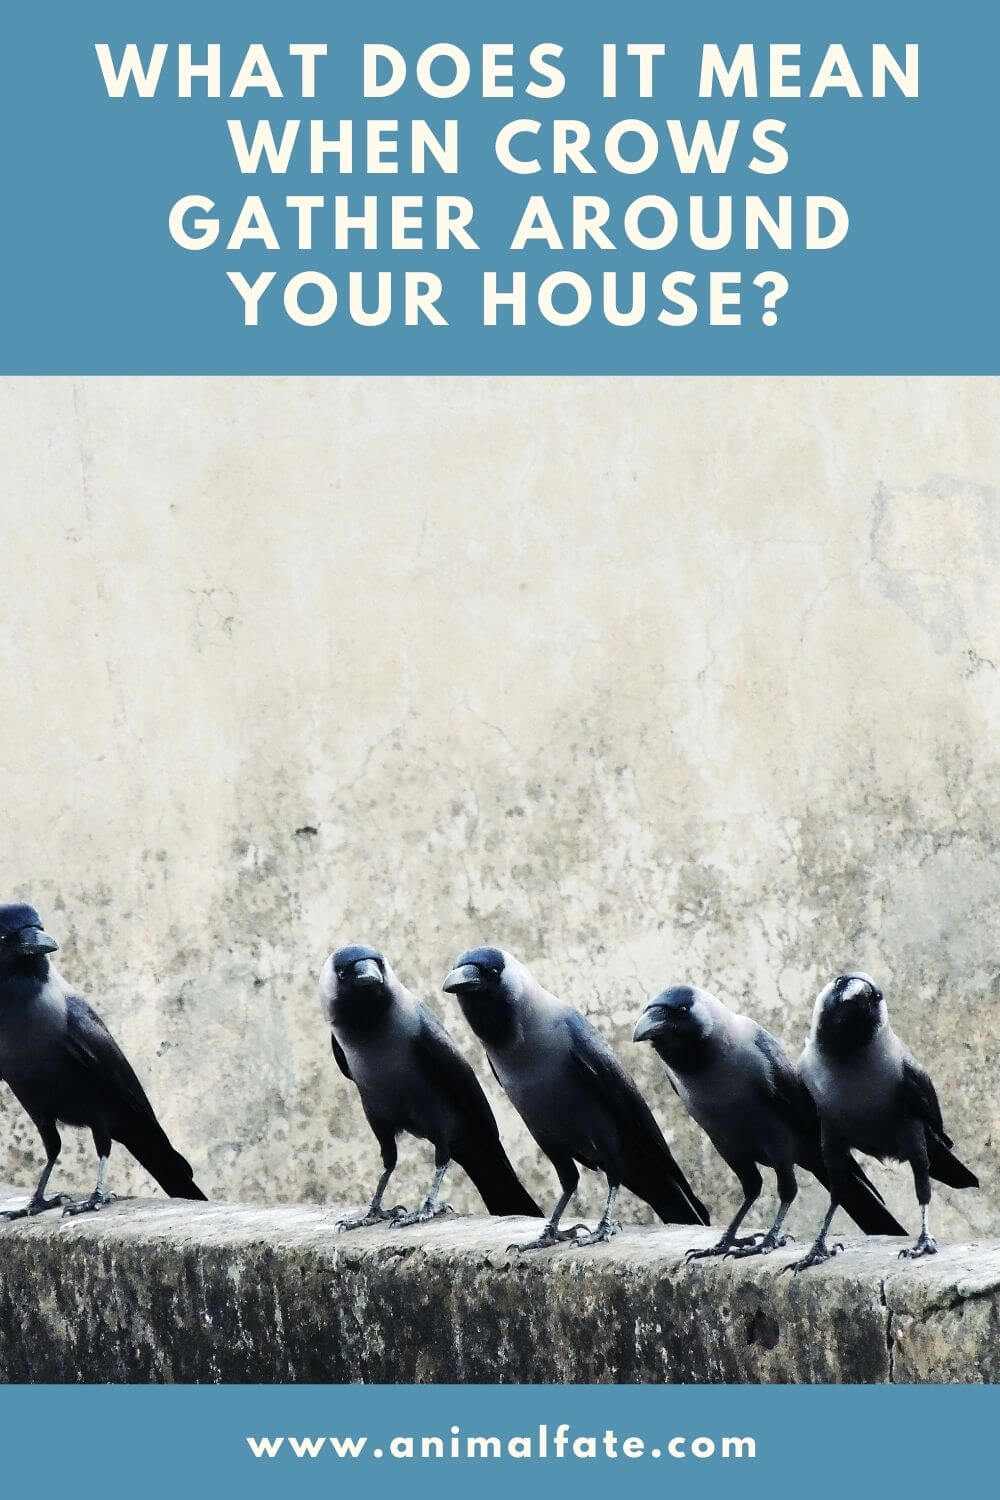 what does it mean when crows gather around your house